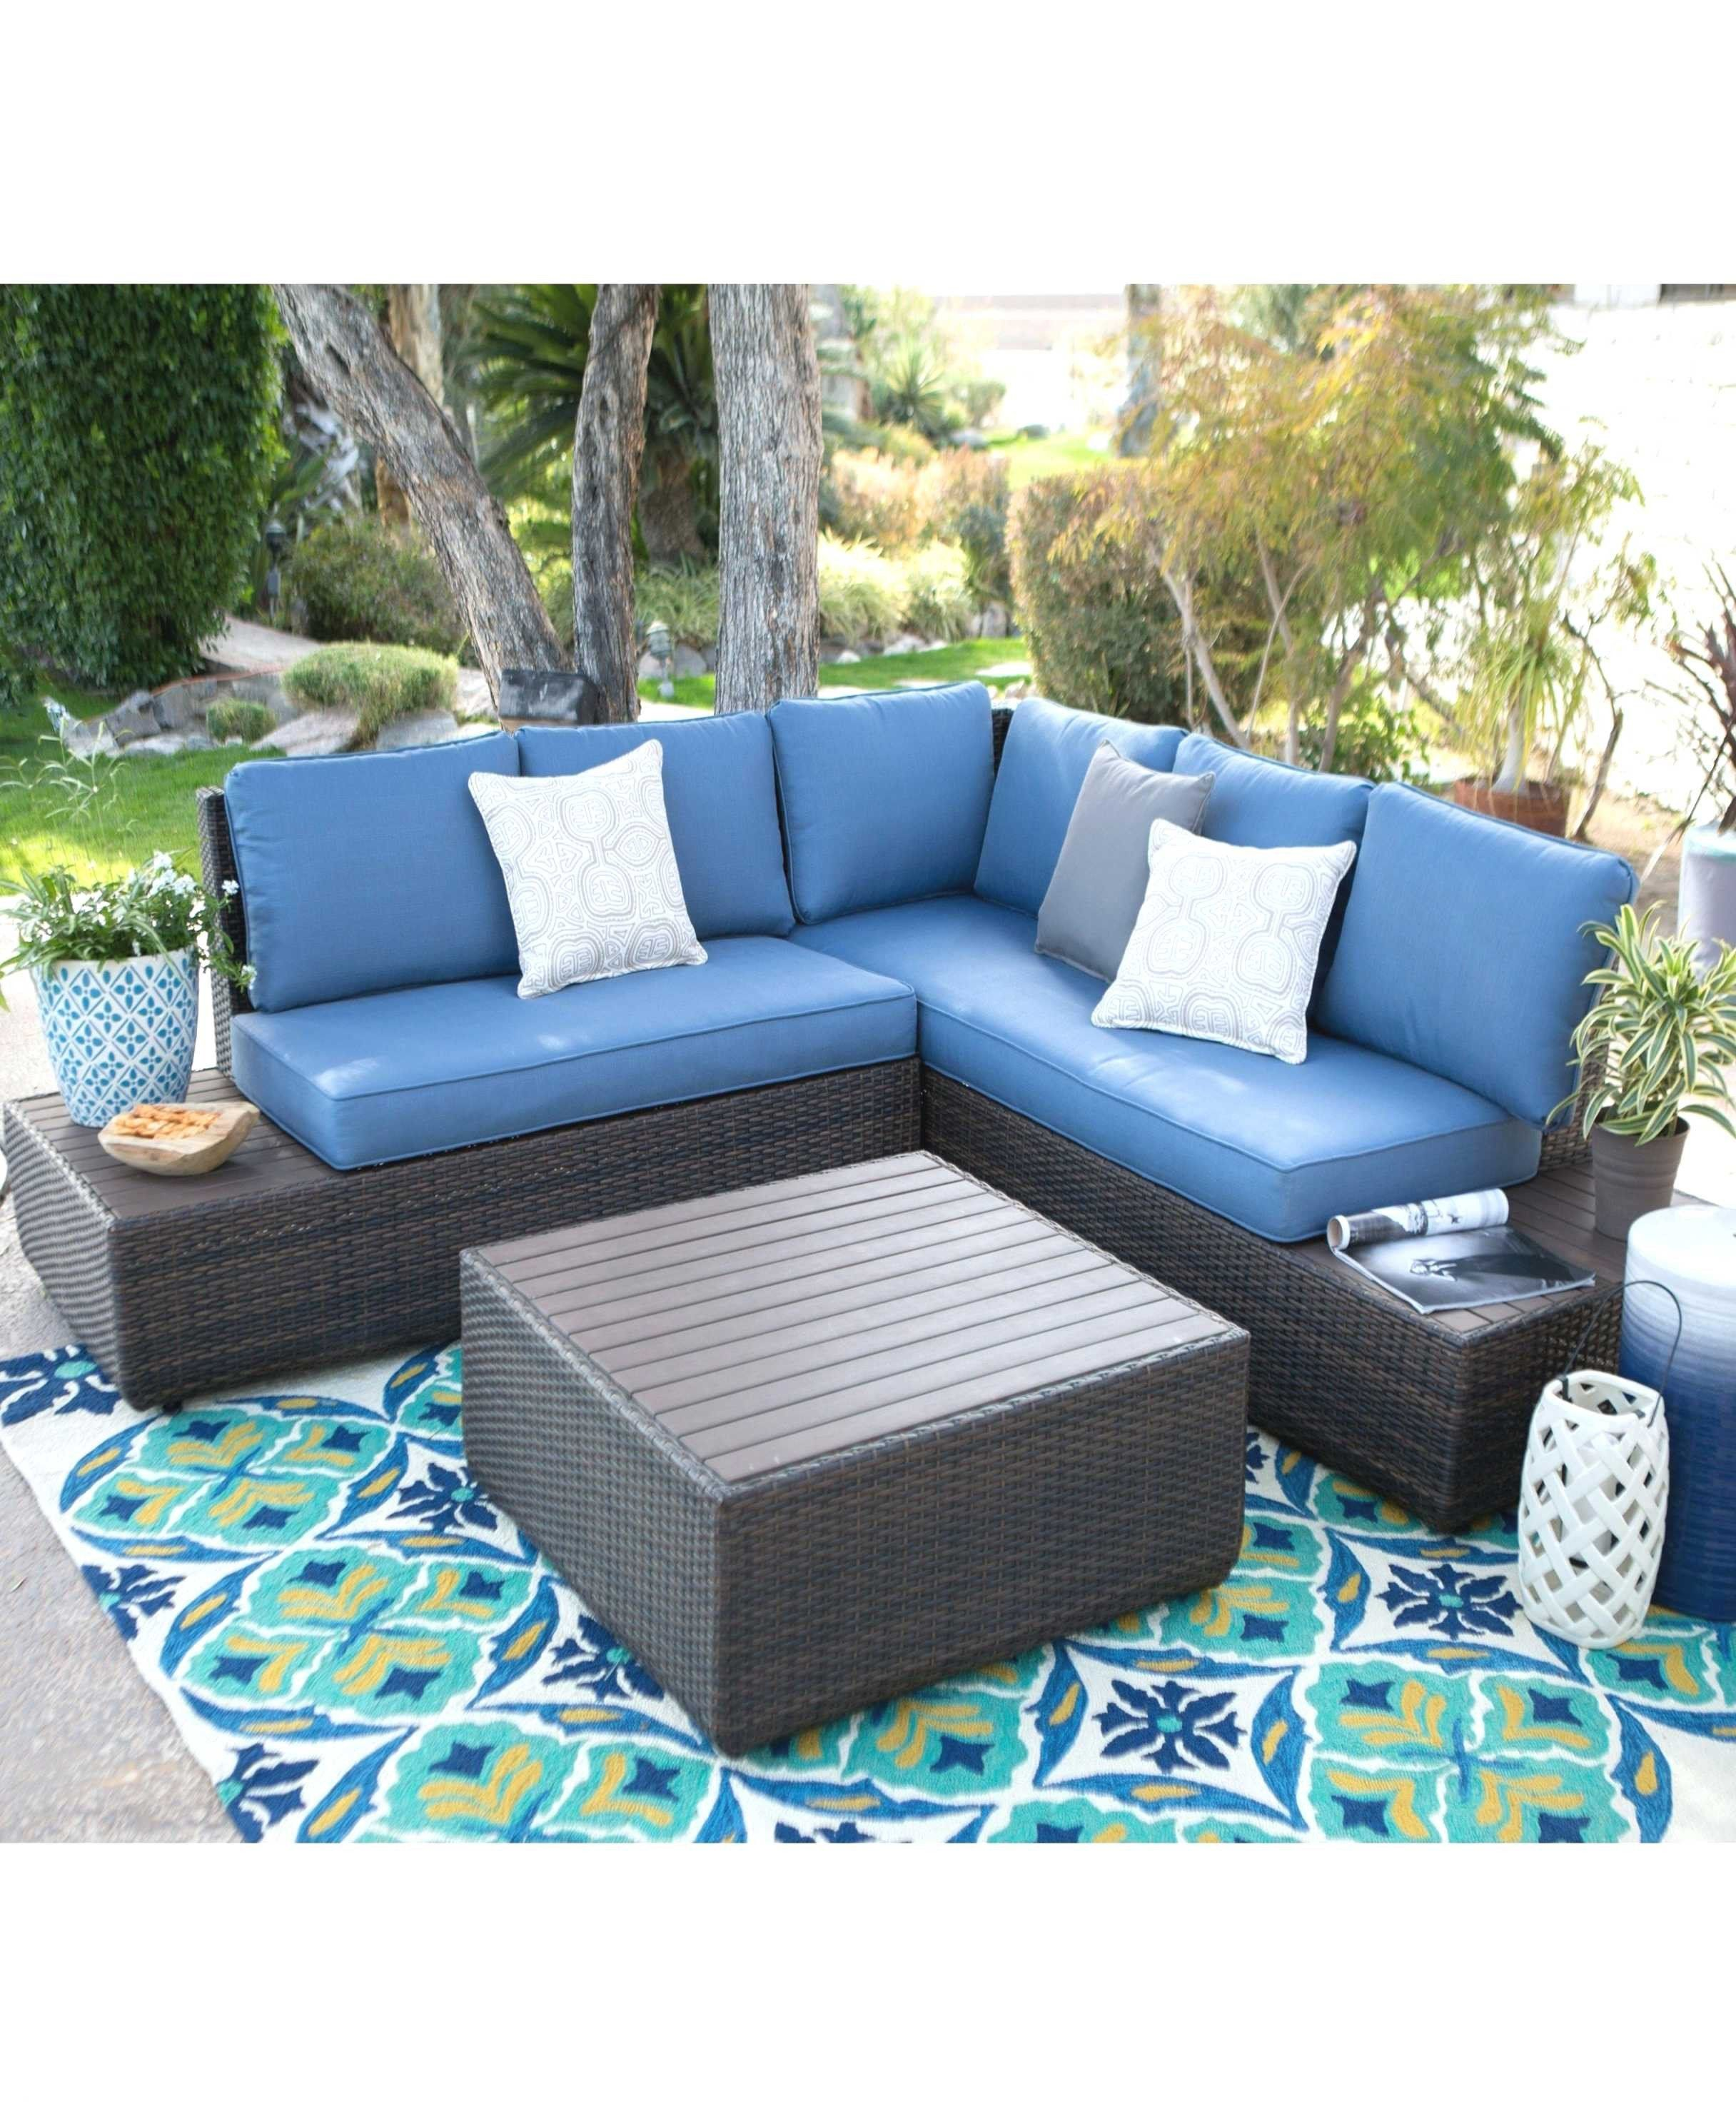 outdoor patio furniture cushions clearance on christmas wall decoration ideas best of 30 inspiring outdoor christmas decorations patio furniture for sale clearance patio furniture outdoor patio furniture pinterest